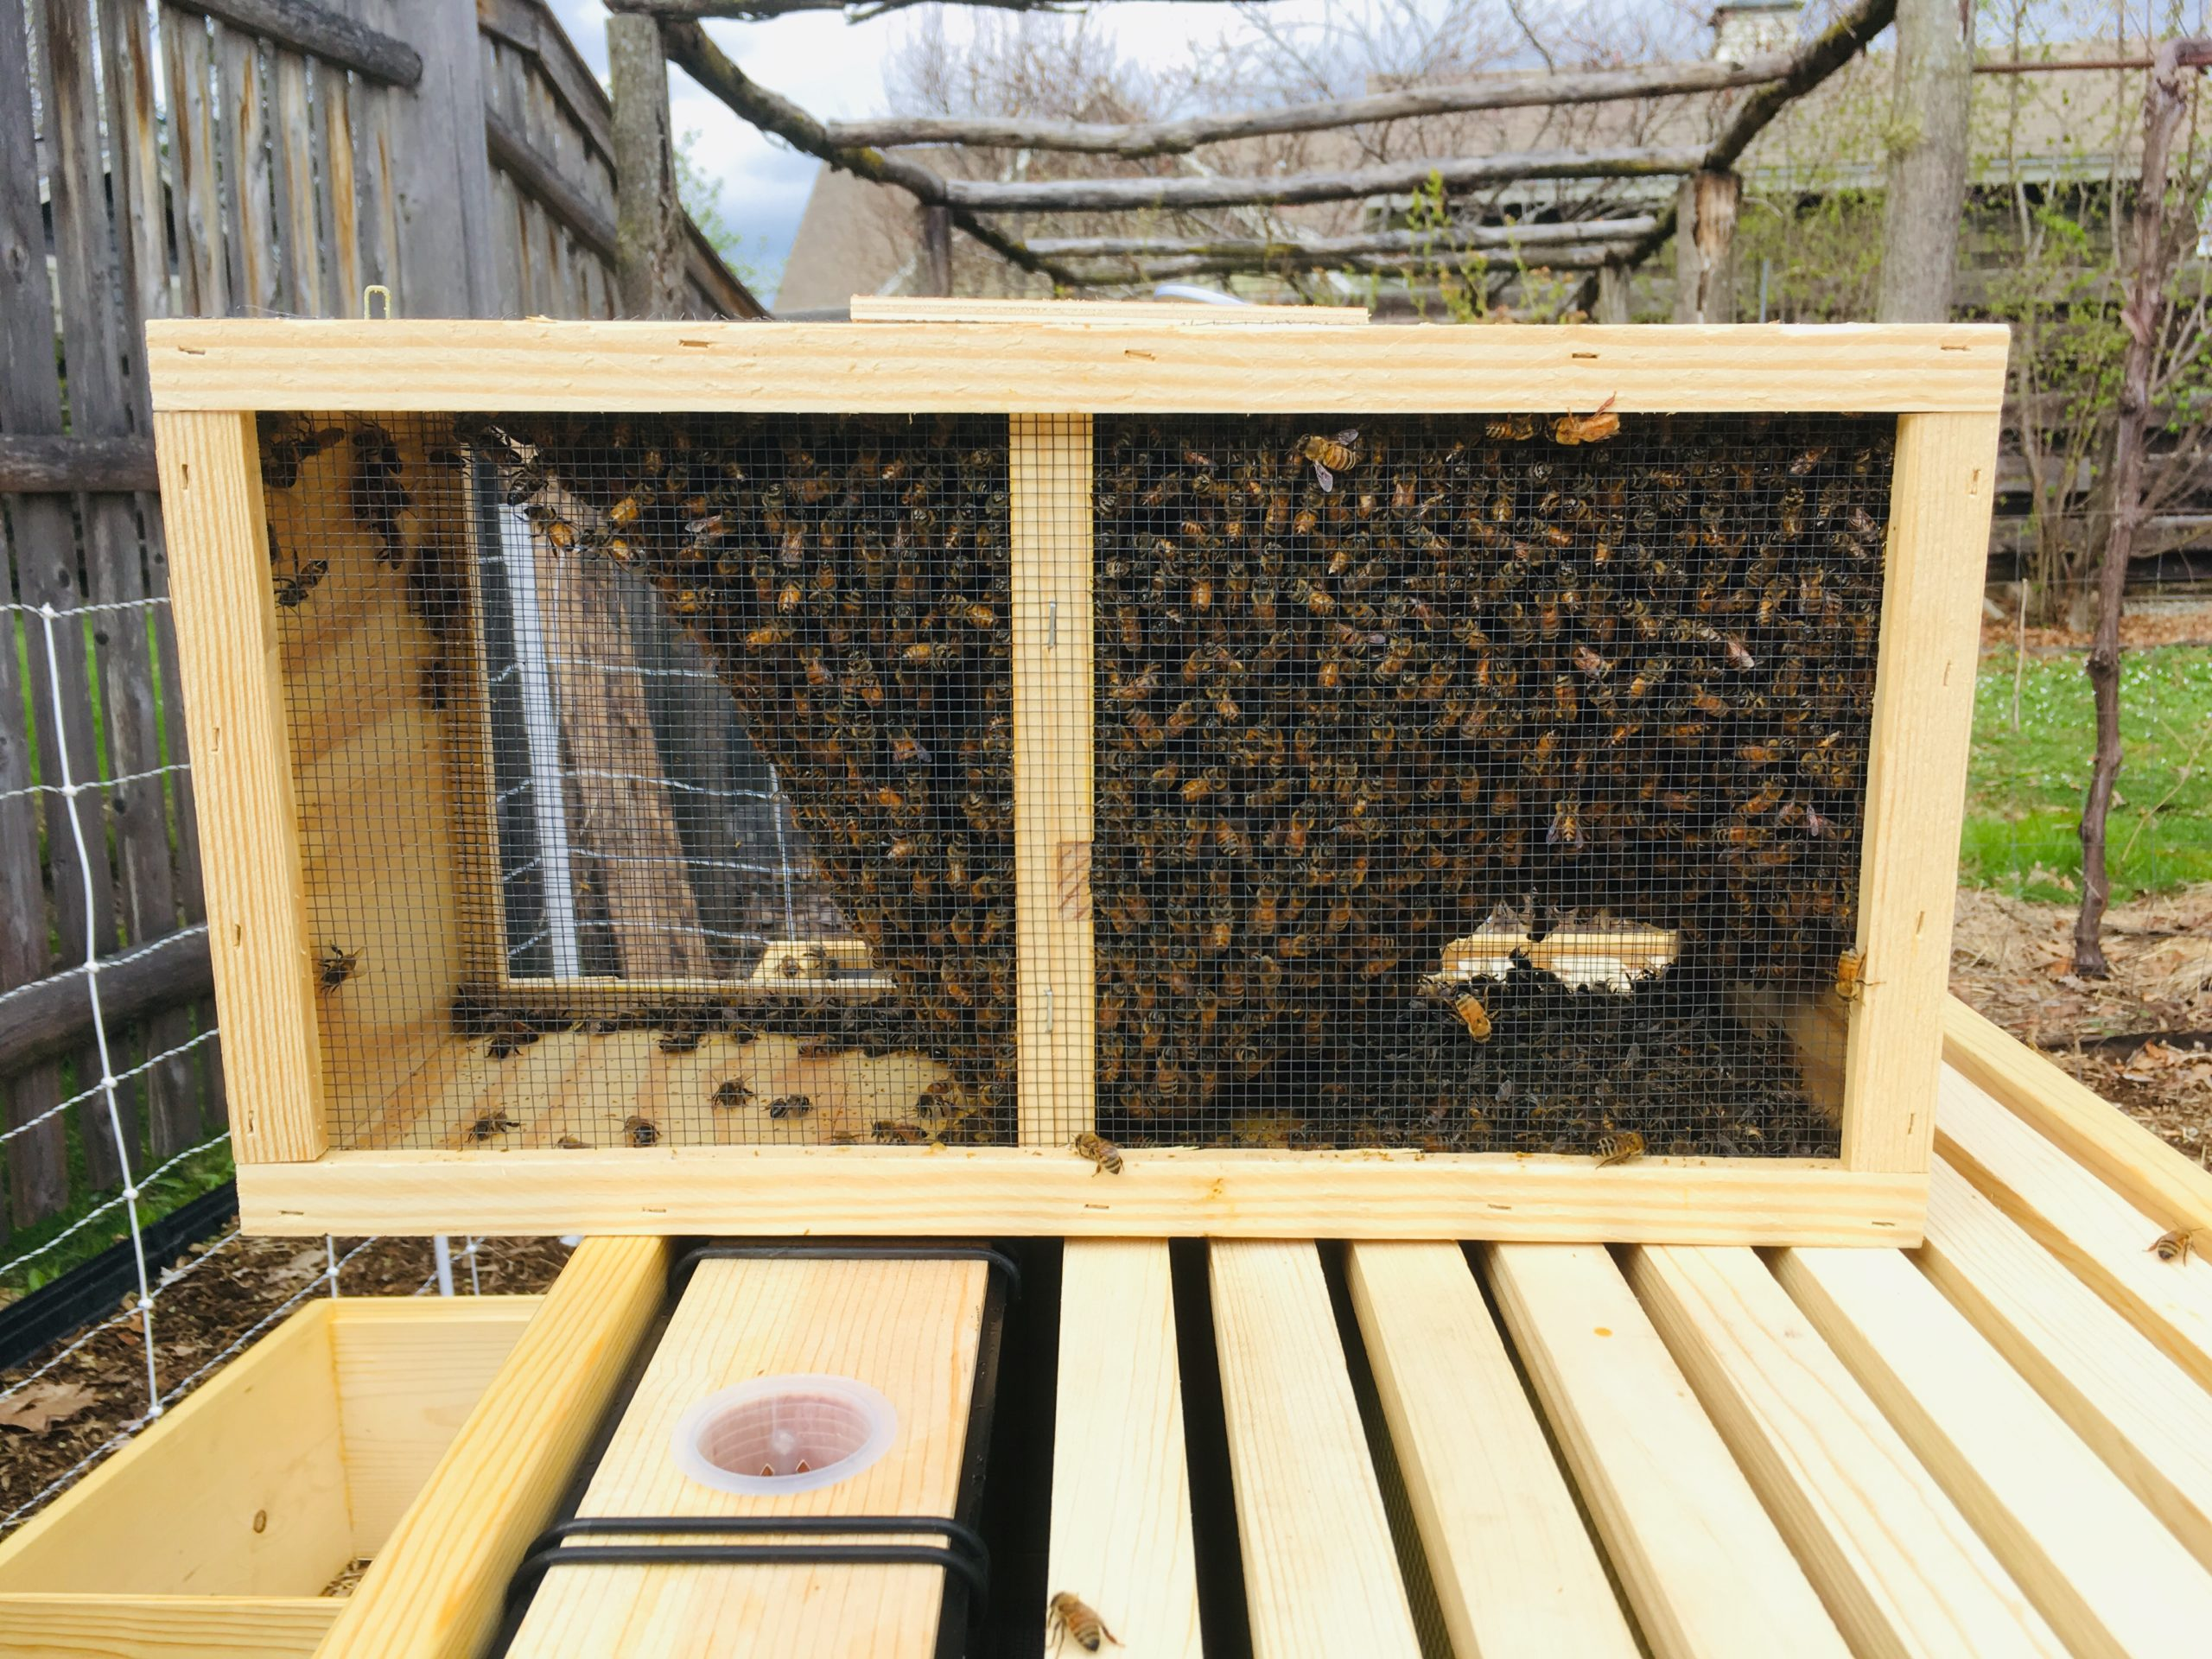 Package of Bees at Little Wren Farm